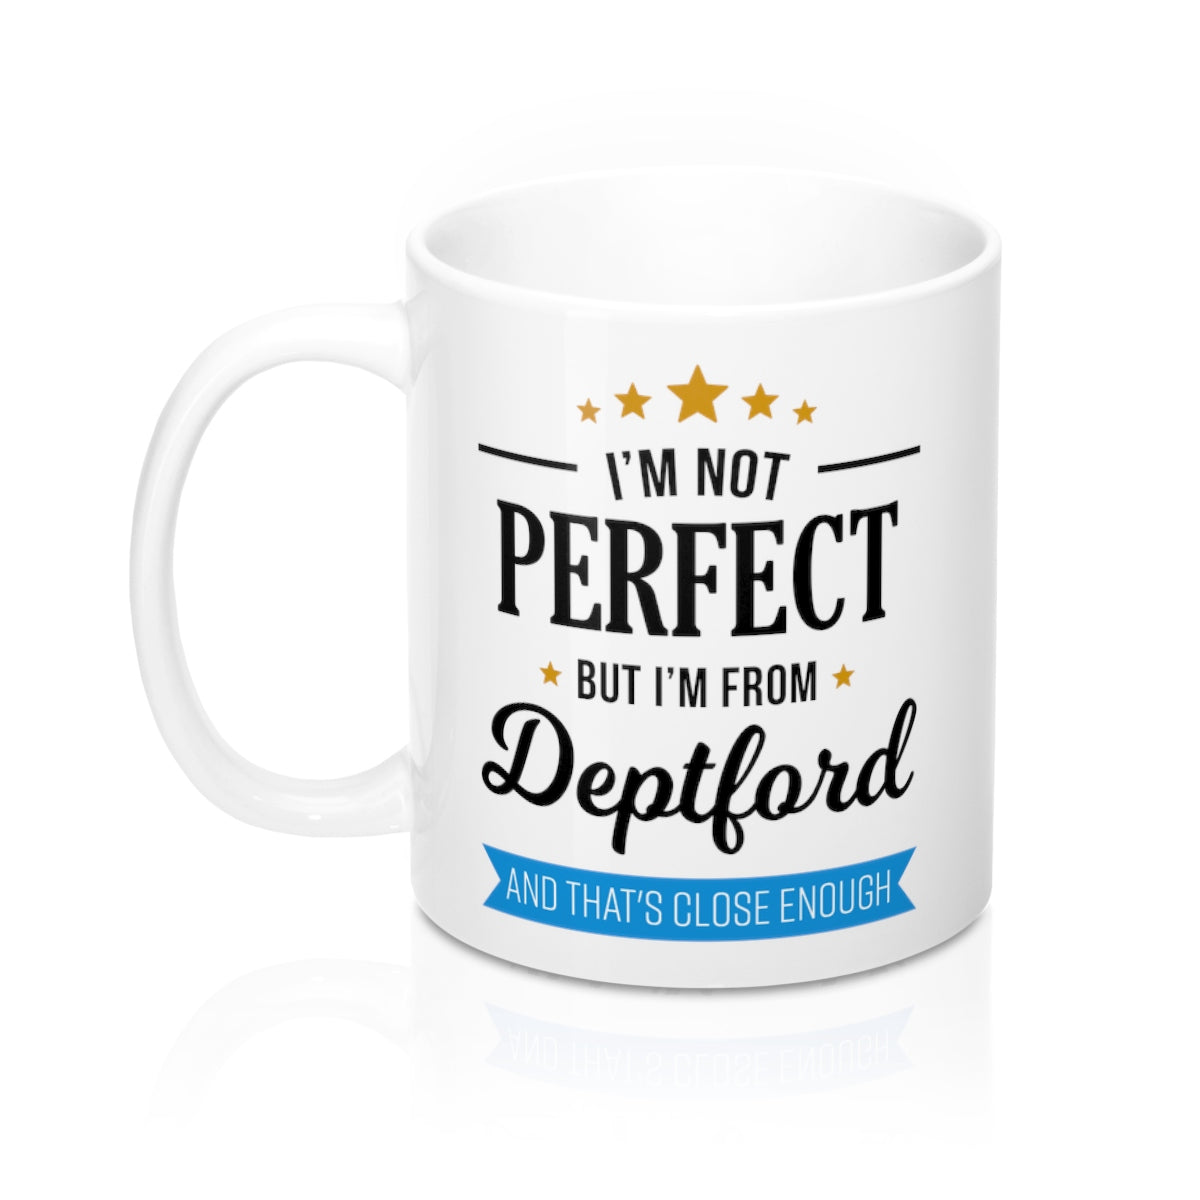 I'm Not Perfect But I'm From Deptford Mug